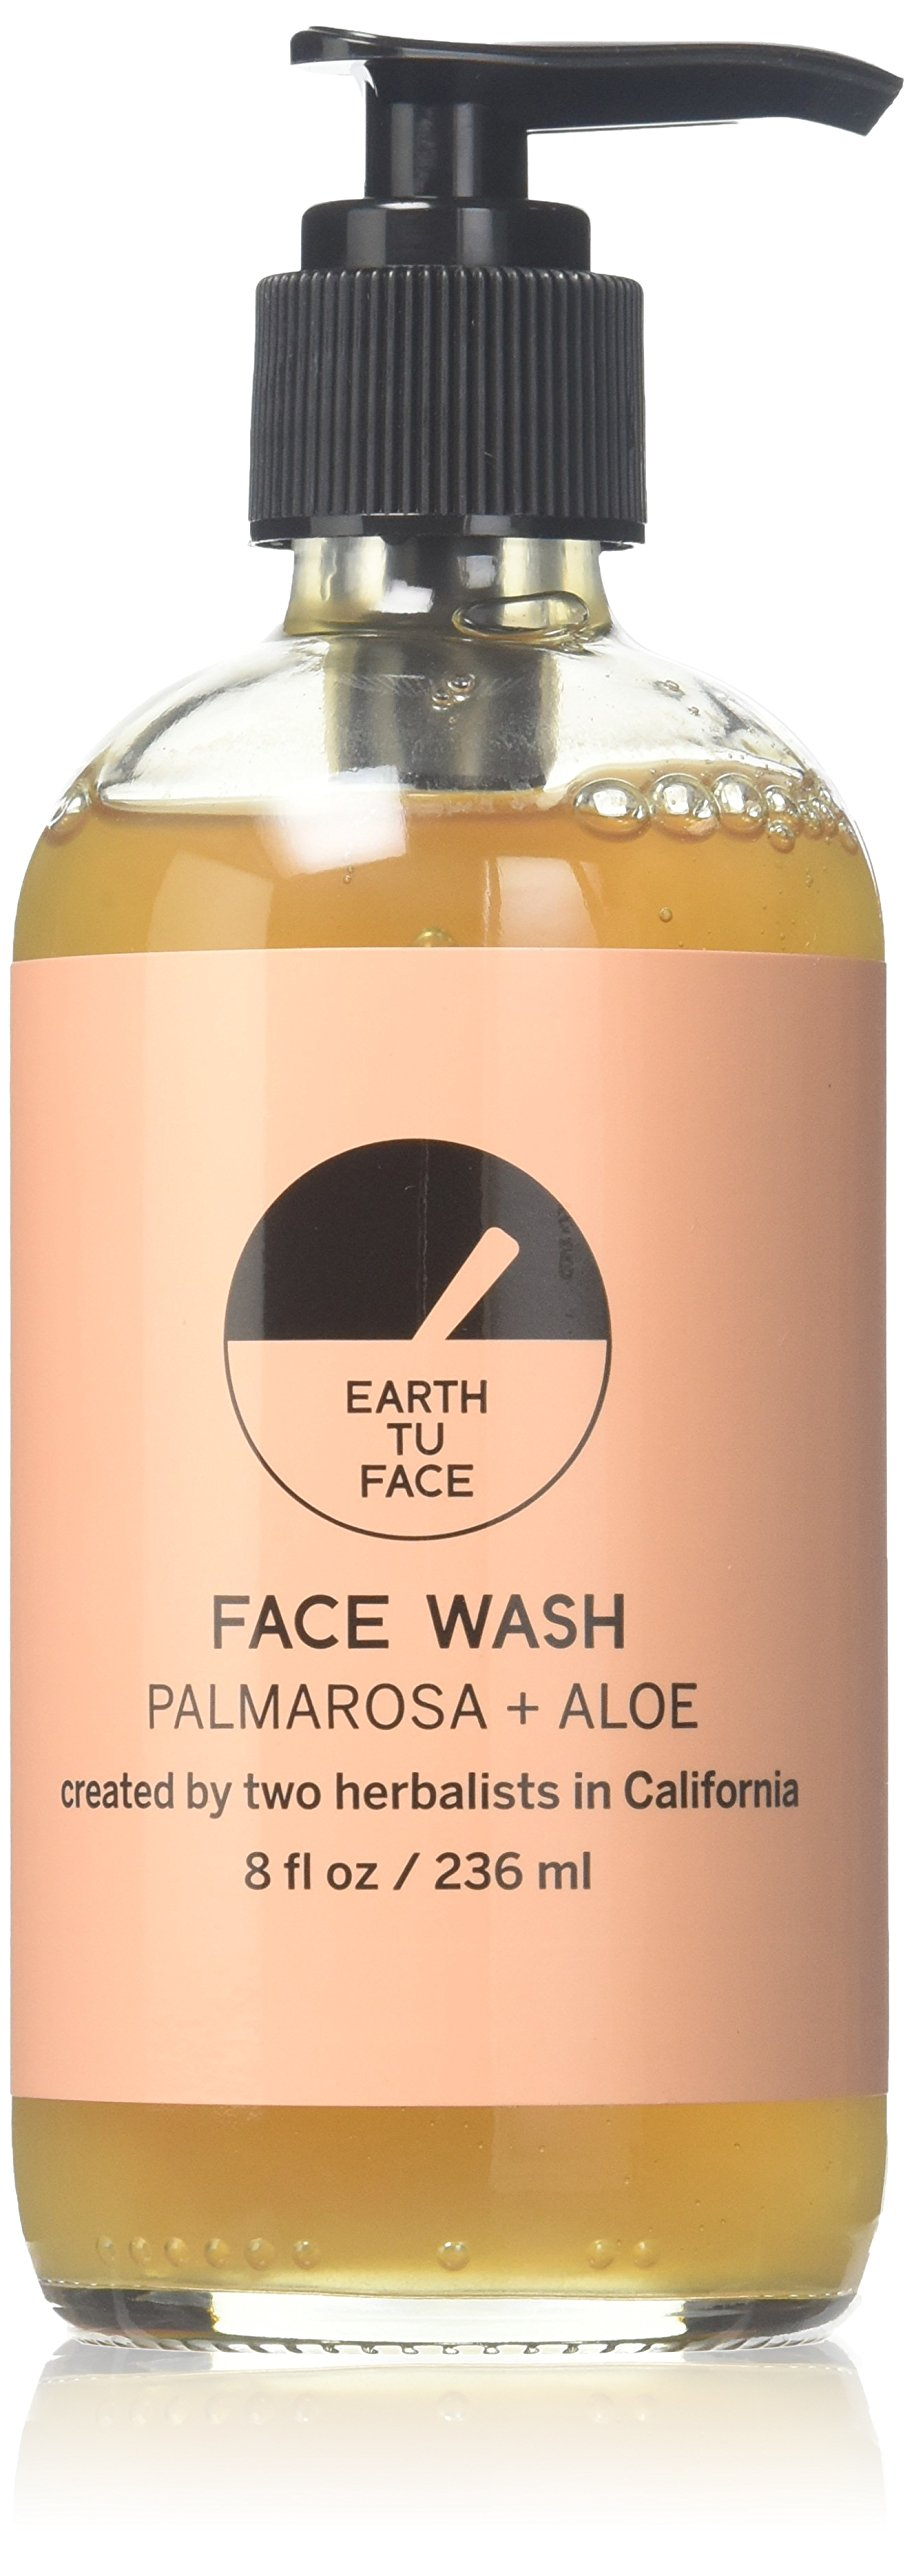 Earth tu Face Organic Palmarosa + Aloe Face Wash